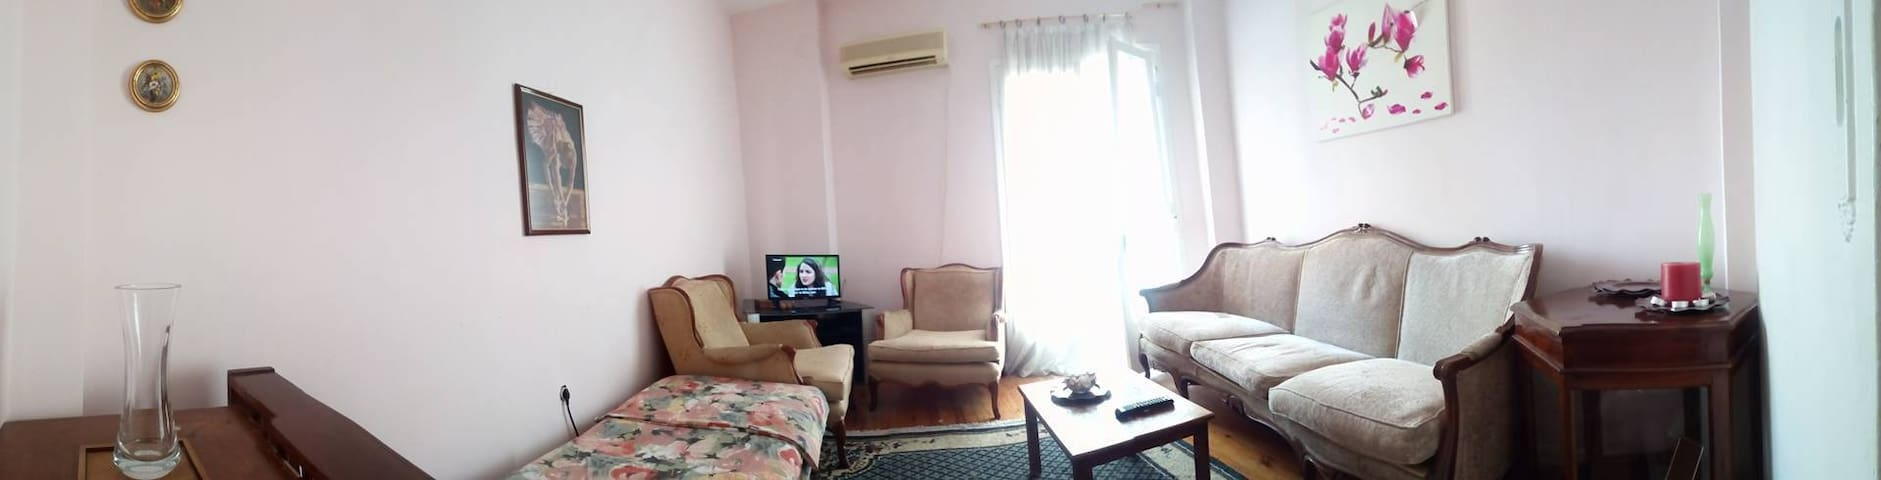 Sunny 2 bed appartment wi-fi air condition